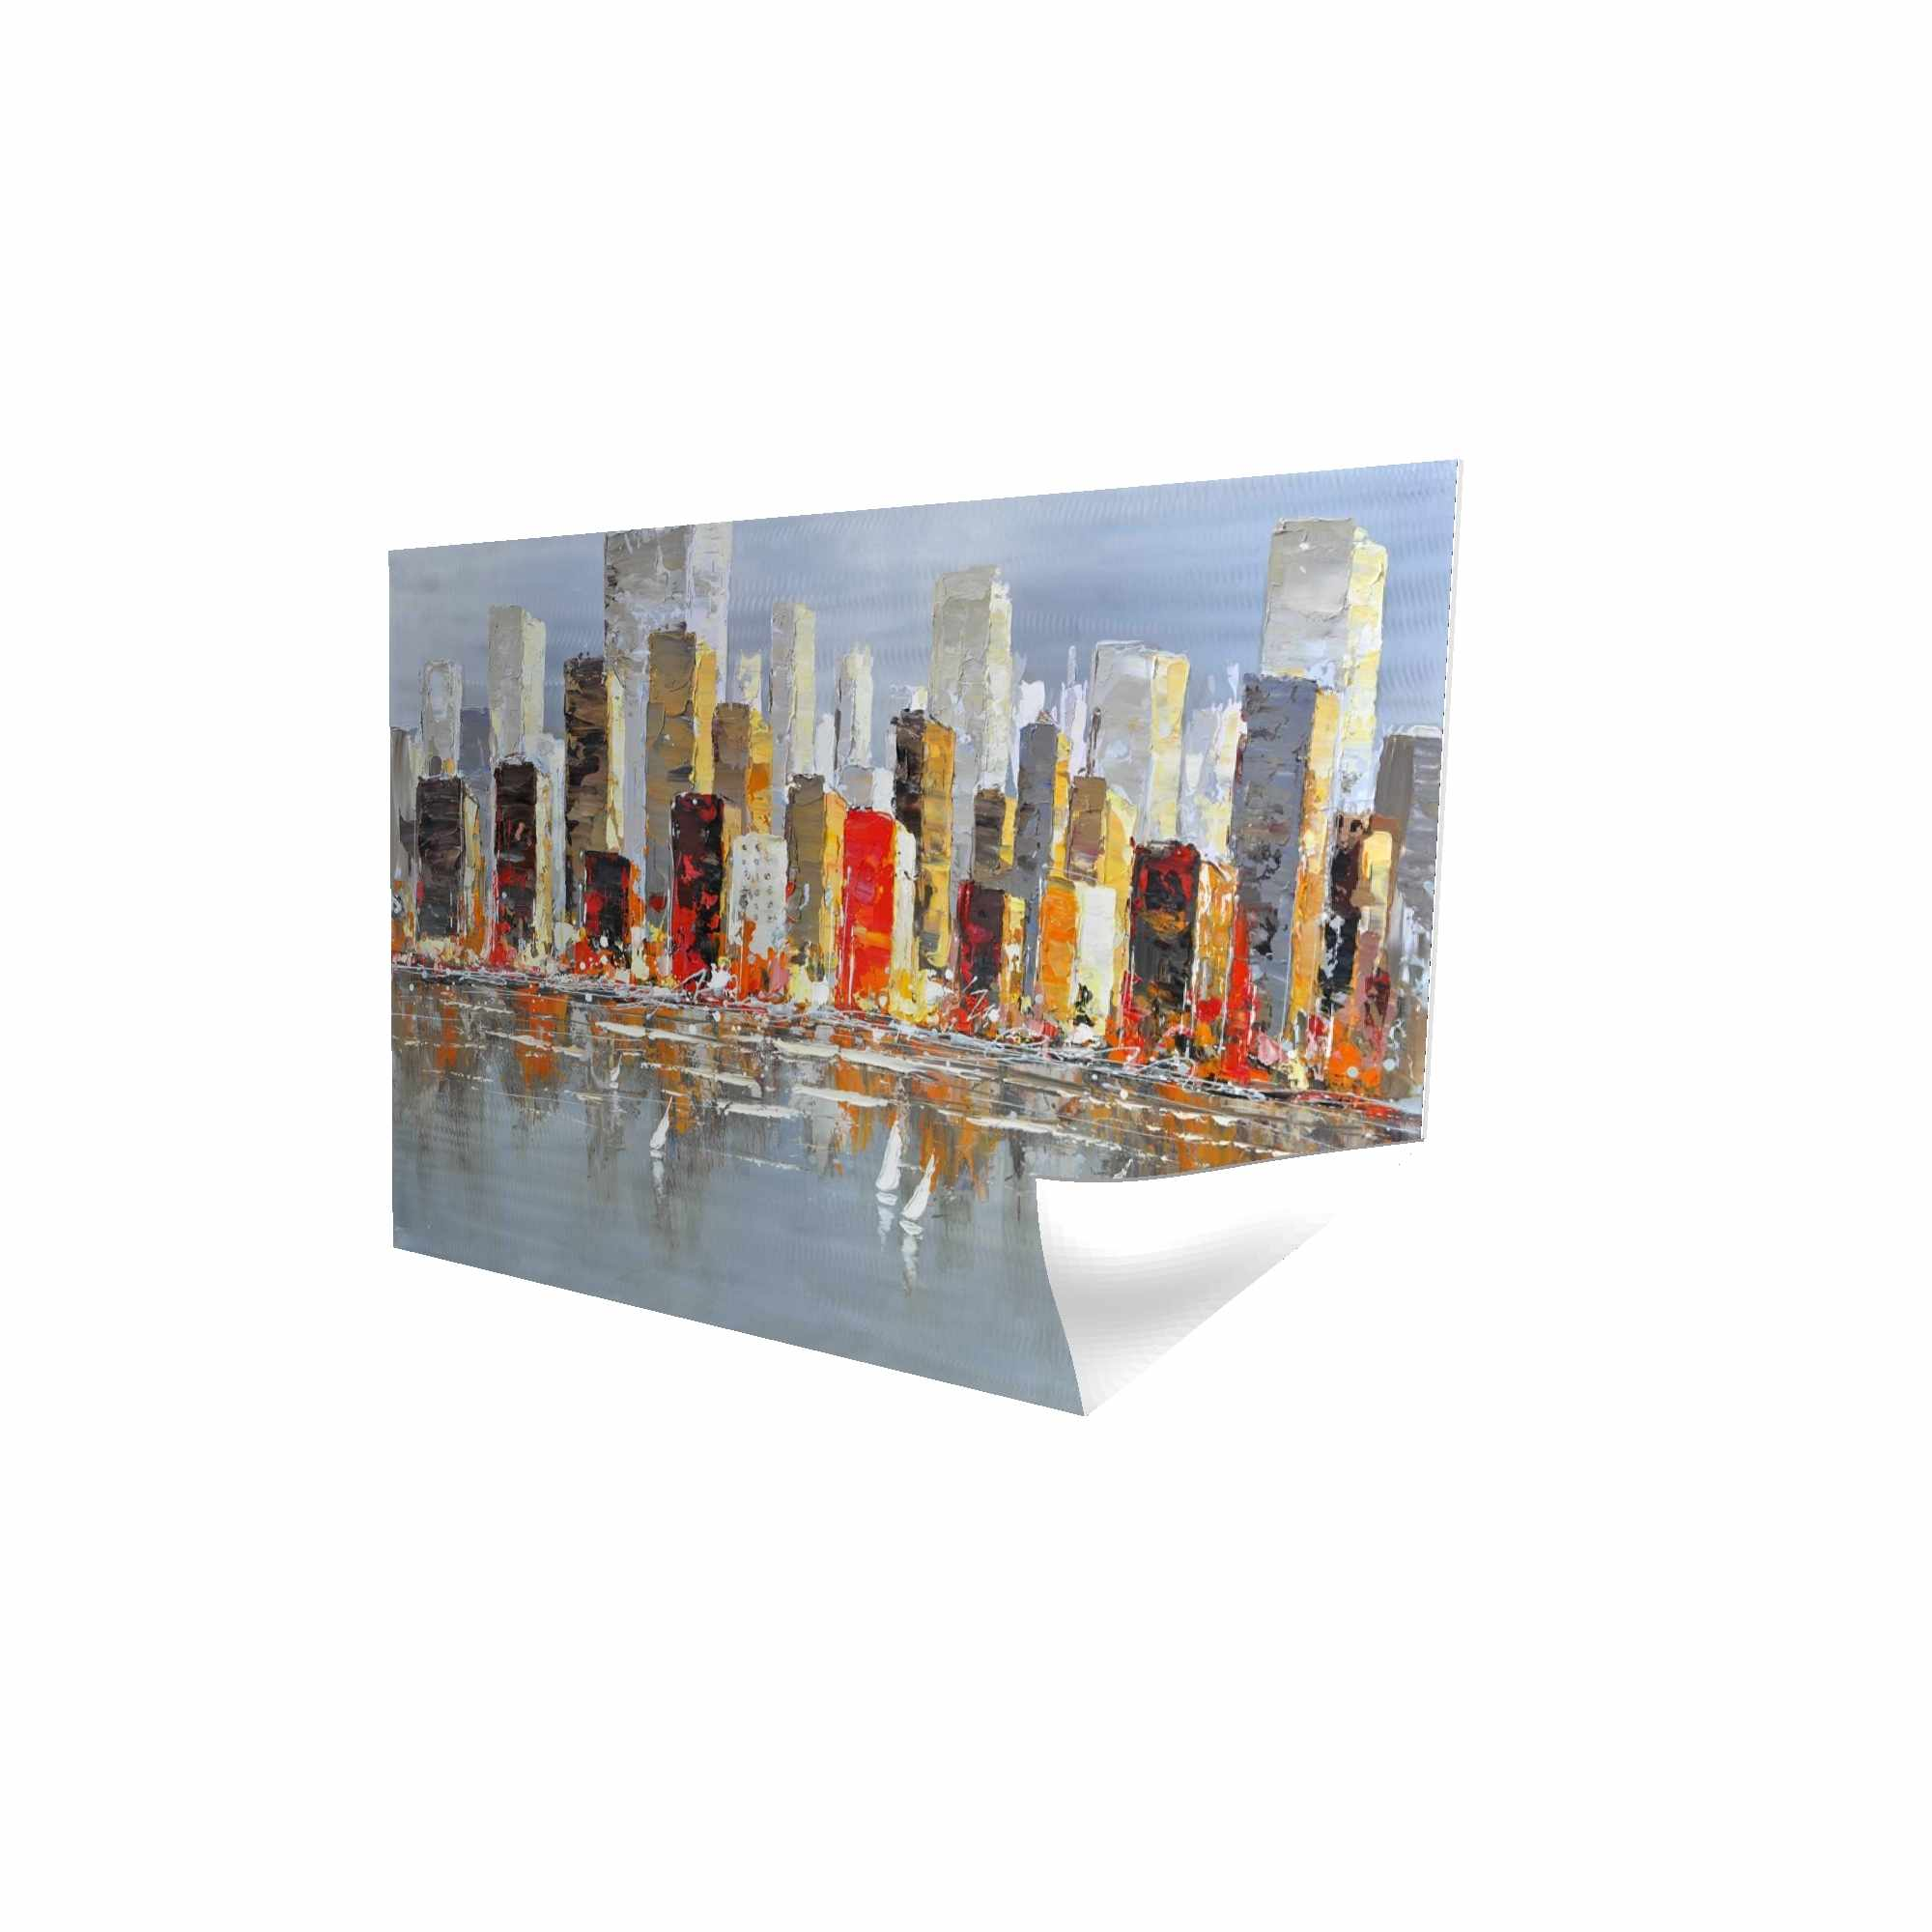 Poster 24 x 36 - 3D - Colorful buildings with water reflection